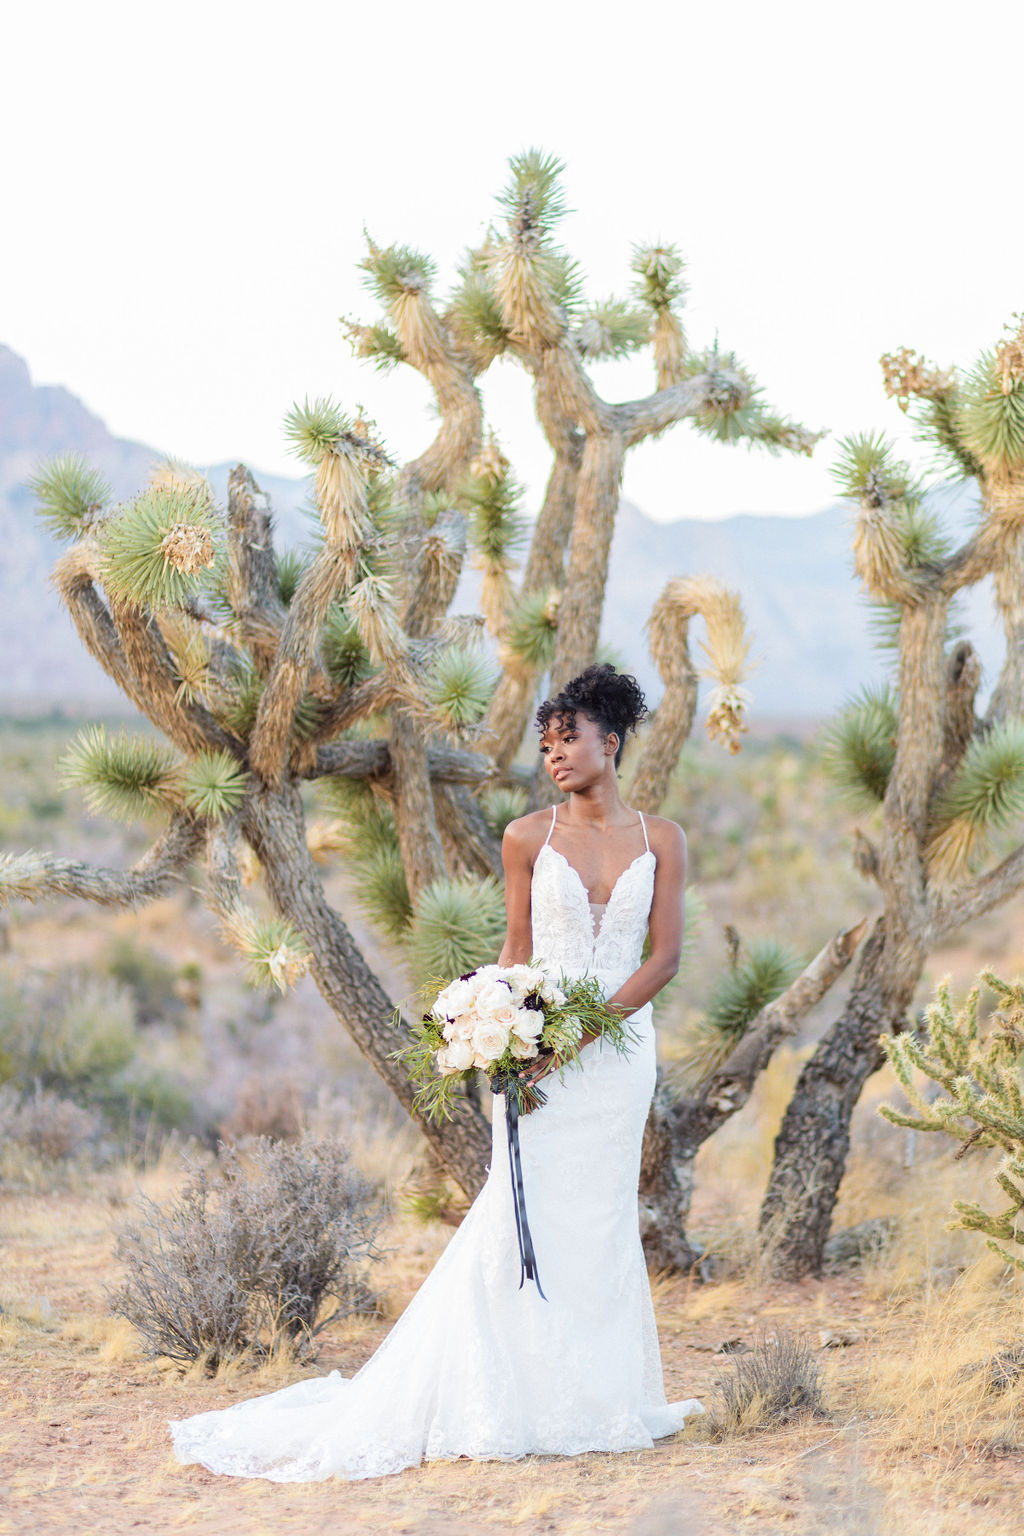 Edgy Romantic Wedding Red Rock Canyon Las Vegas Bride Elizabeth Burgi Photography 5